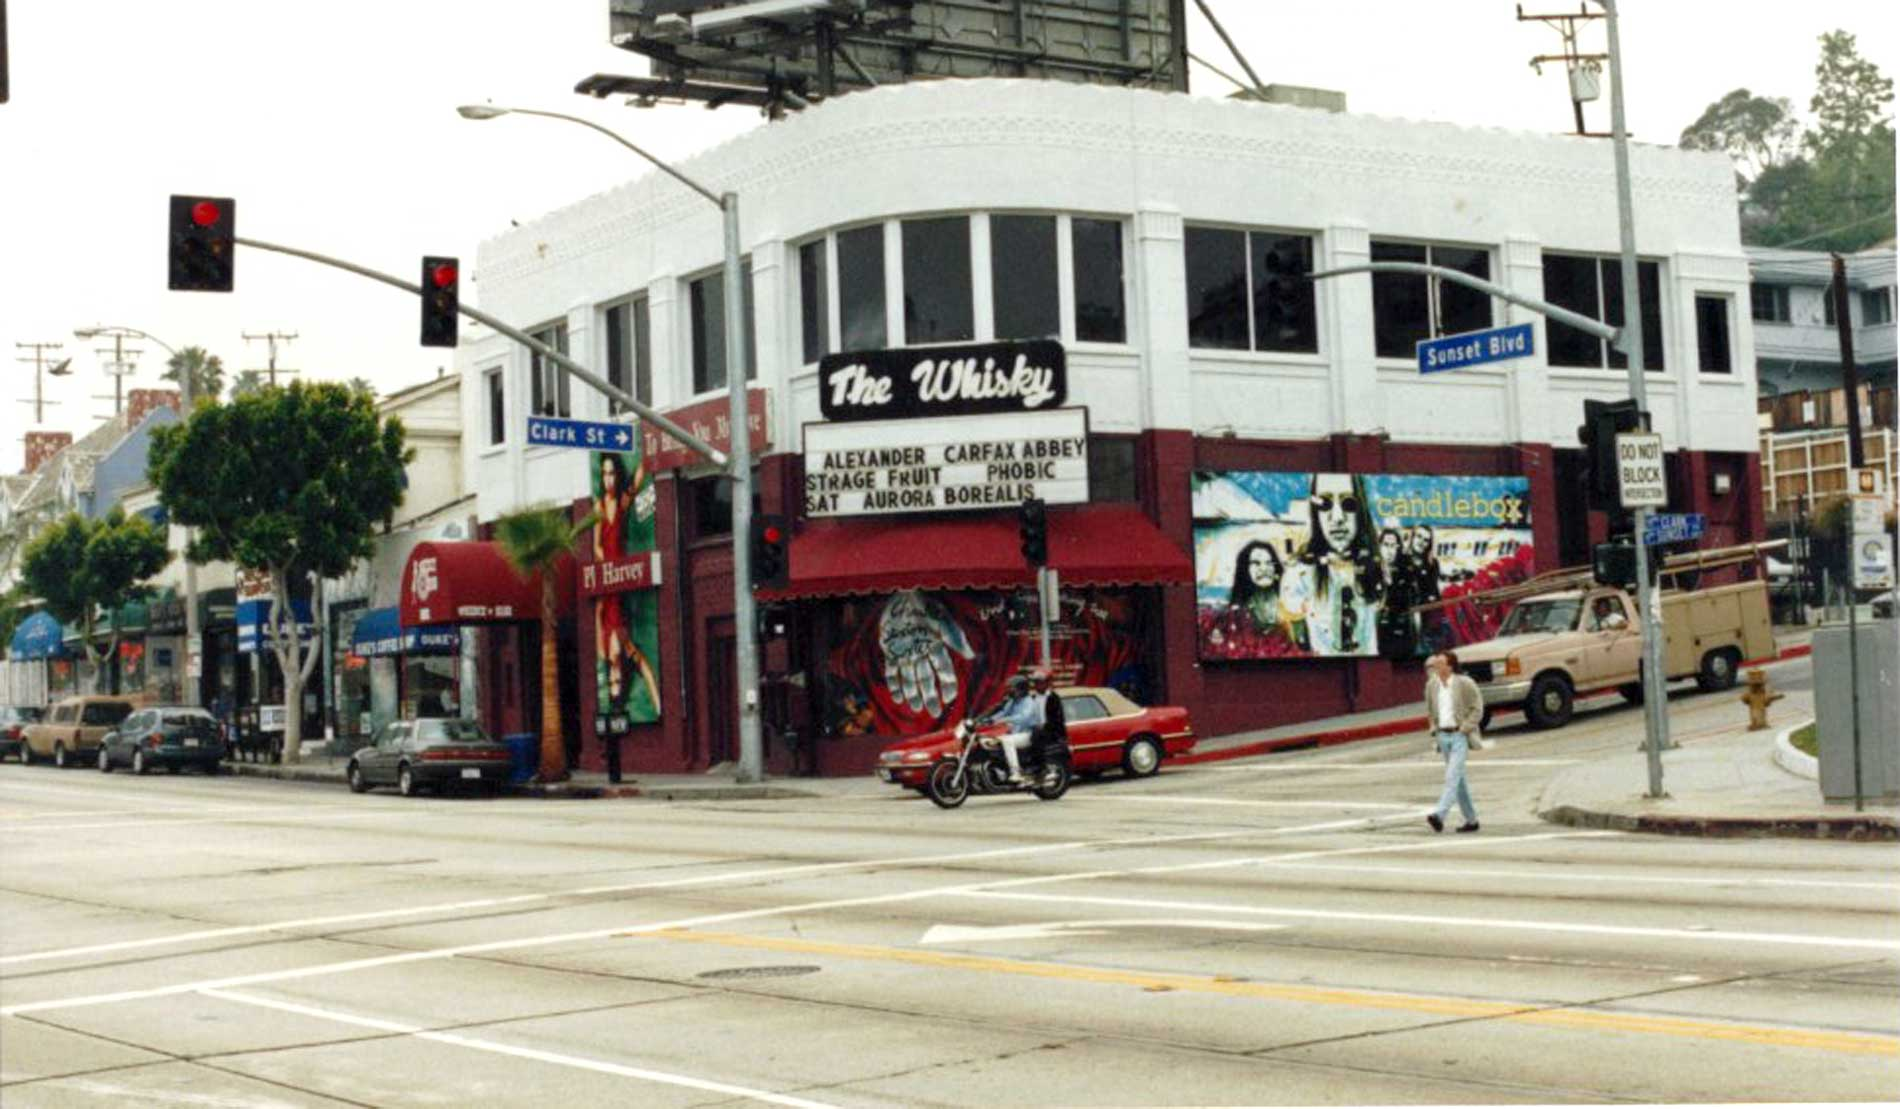 More rock and roll history has taken place in this one building than in most of the cities in the United States combined. Go-go girls mini skirted dancers ... & The Whisky A Go Go The Byrds \u0026 The Doors Played Here In The 60\u0027s